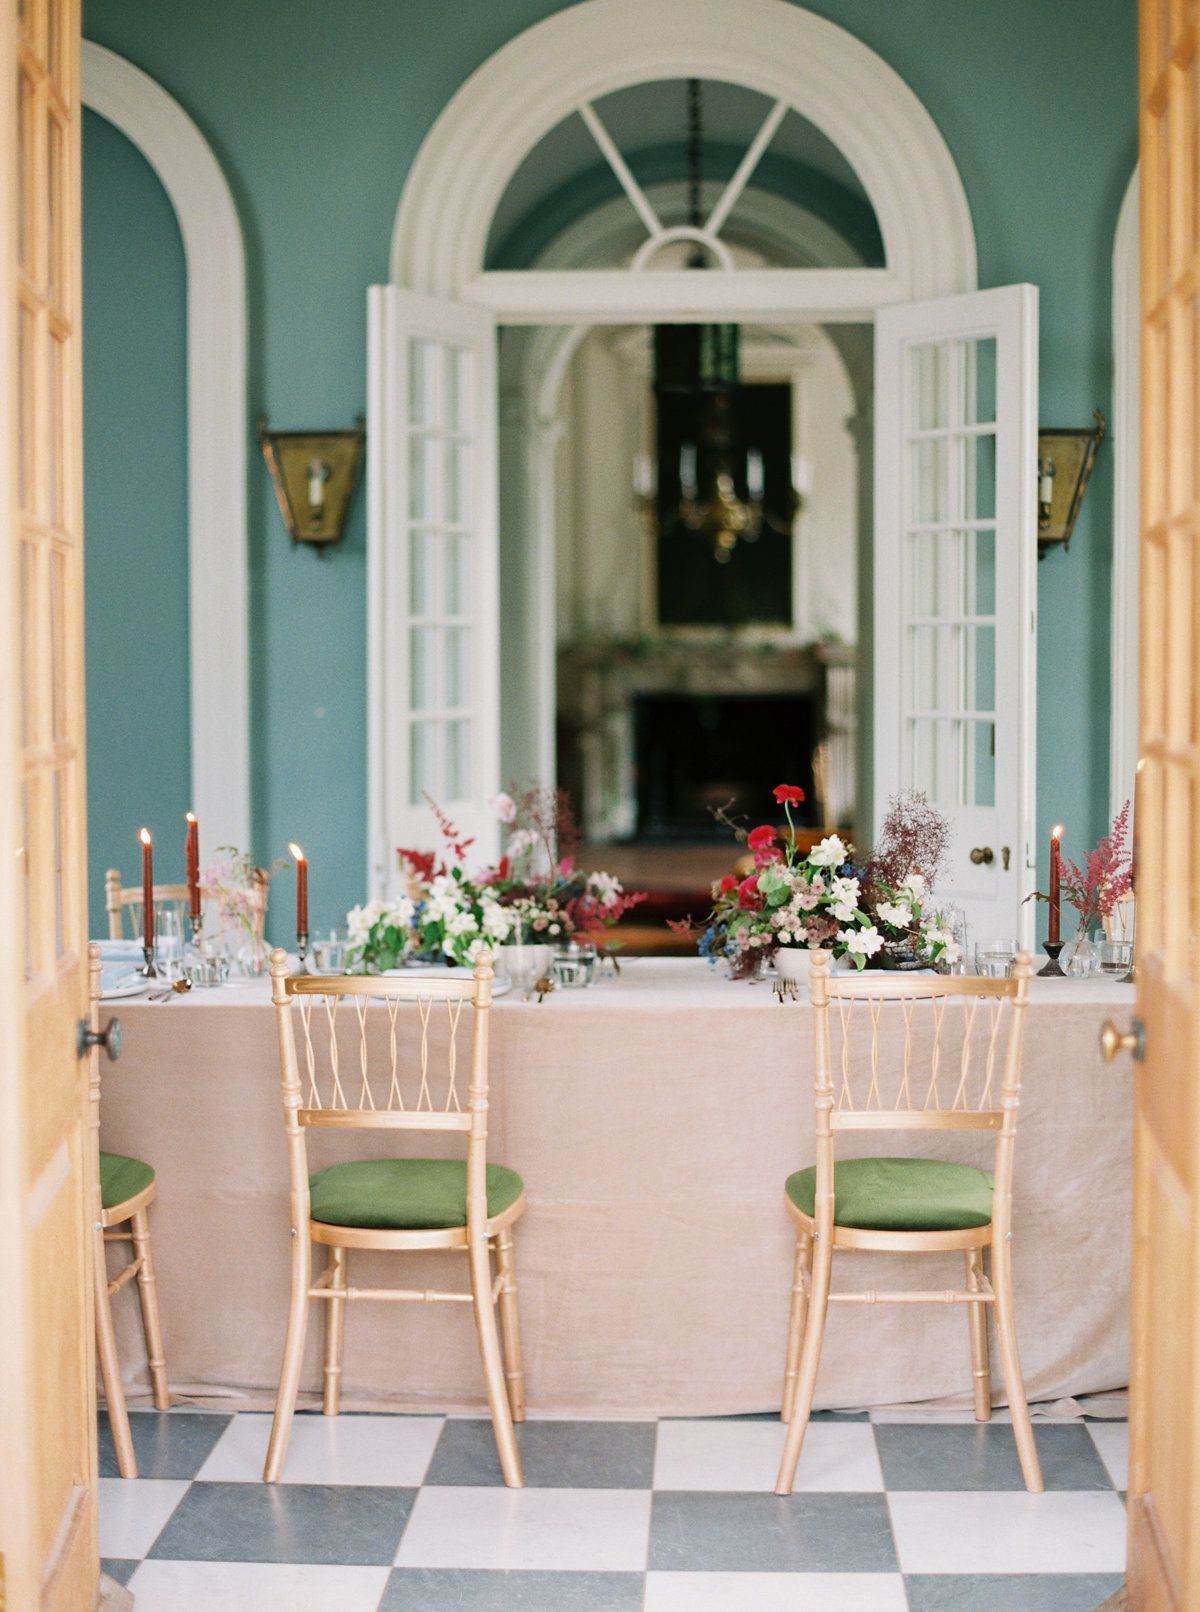 A Light And Airy Wedding Set In A Historic, Regal Setting